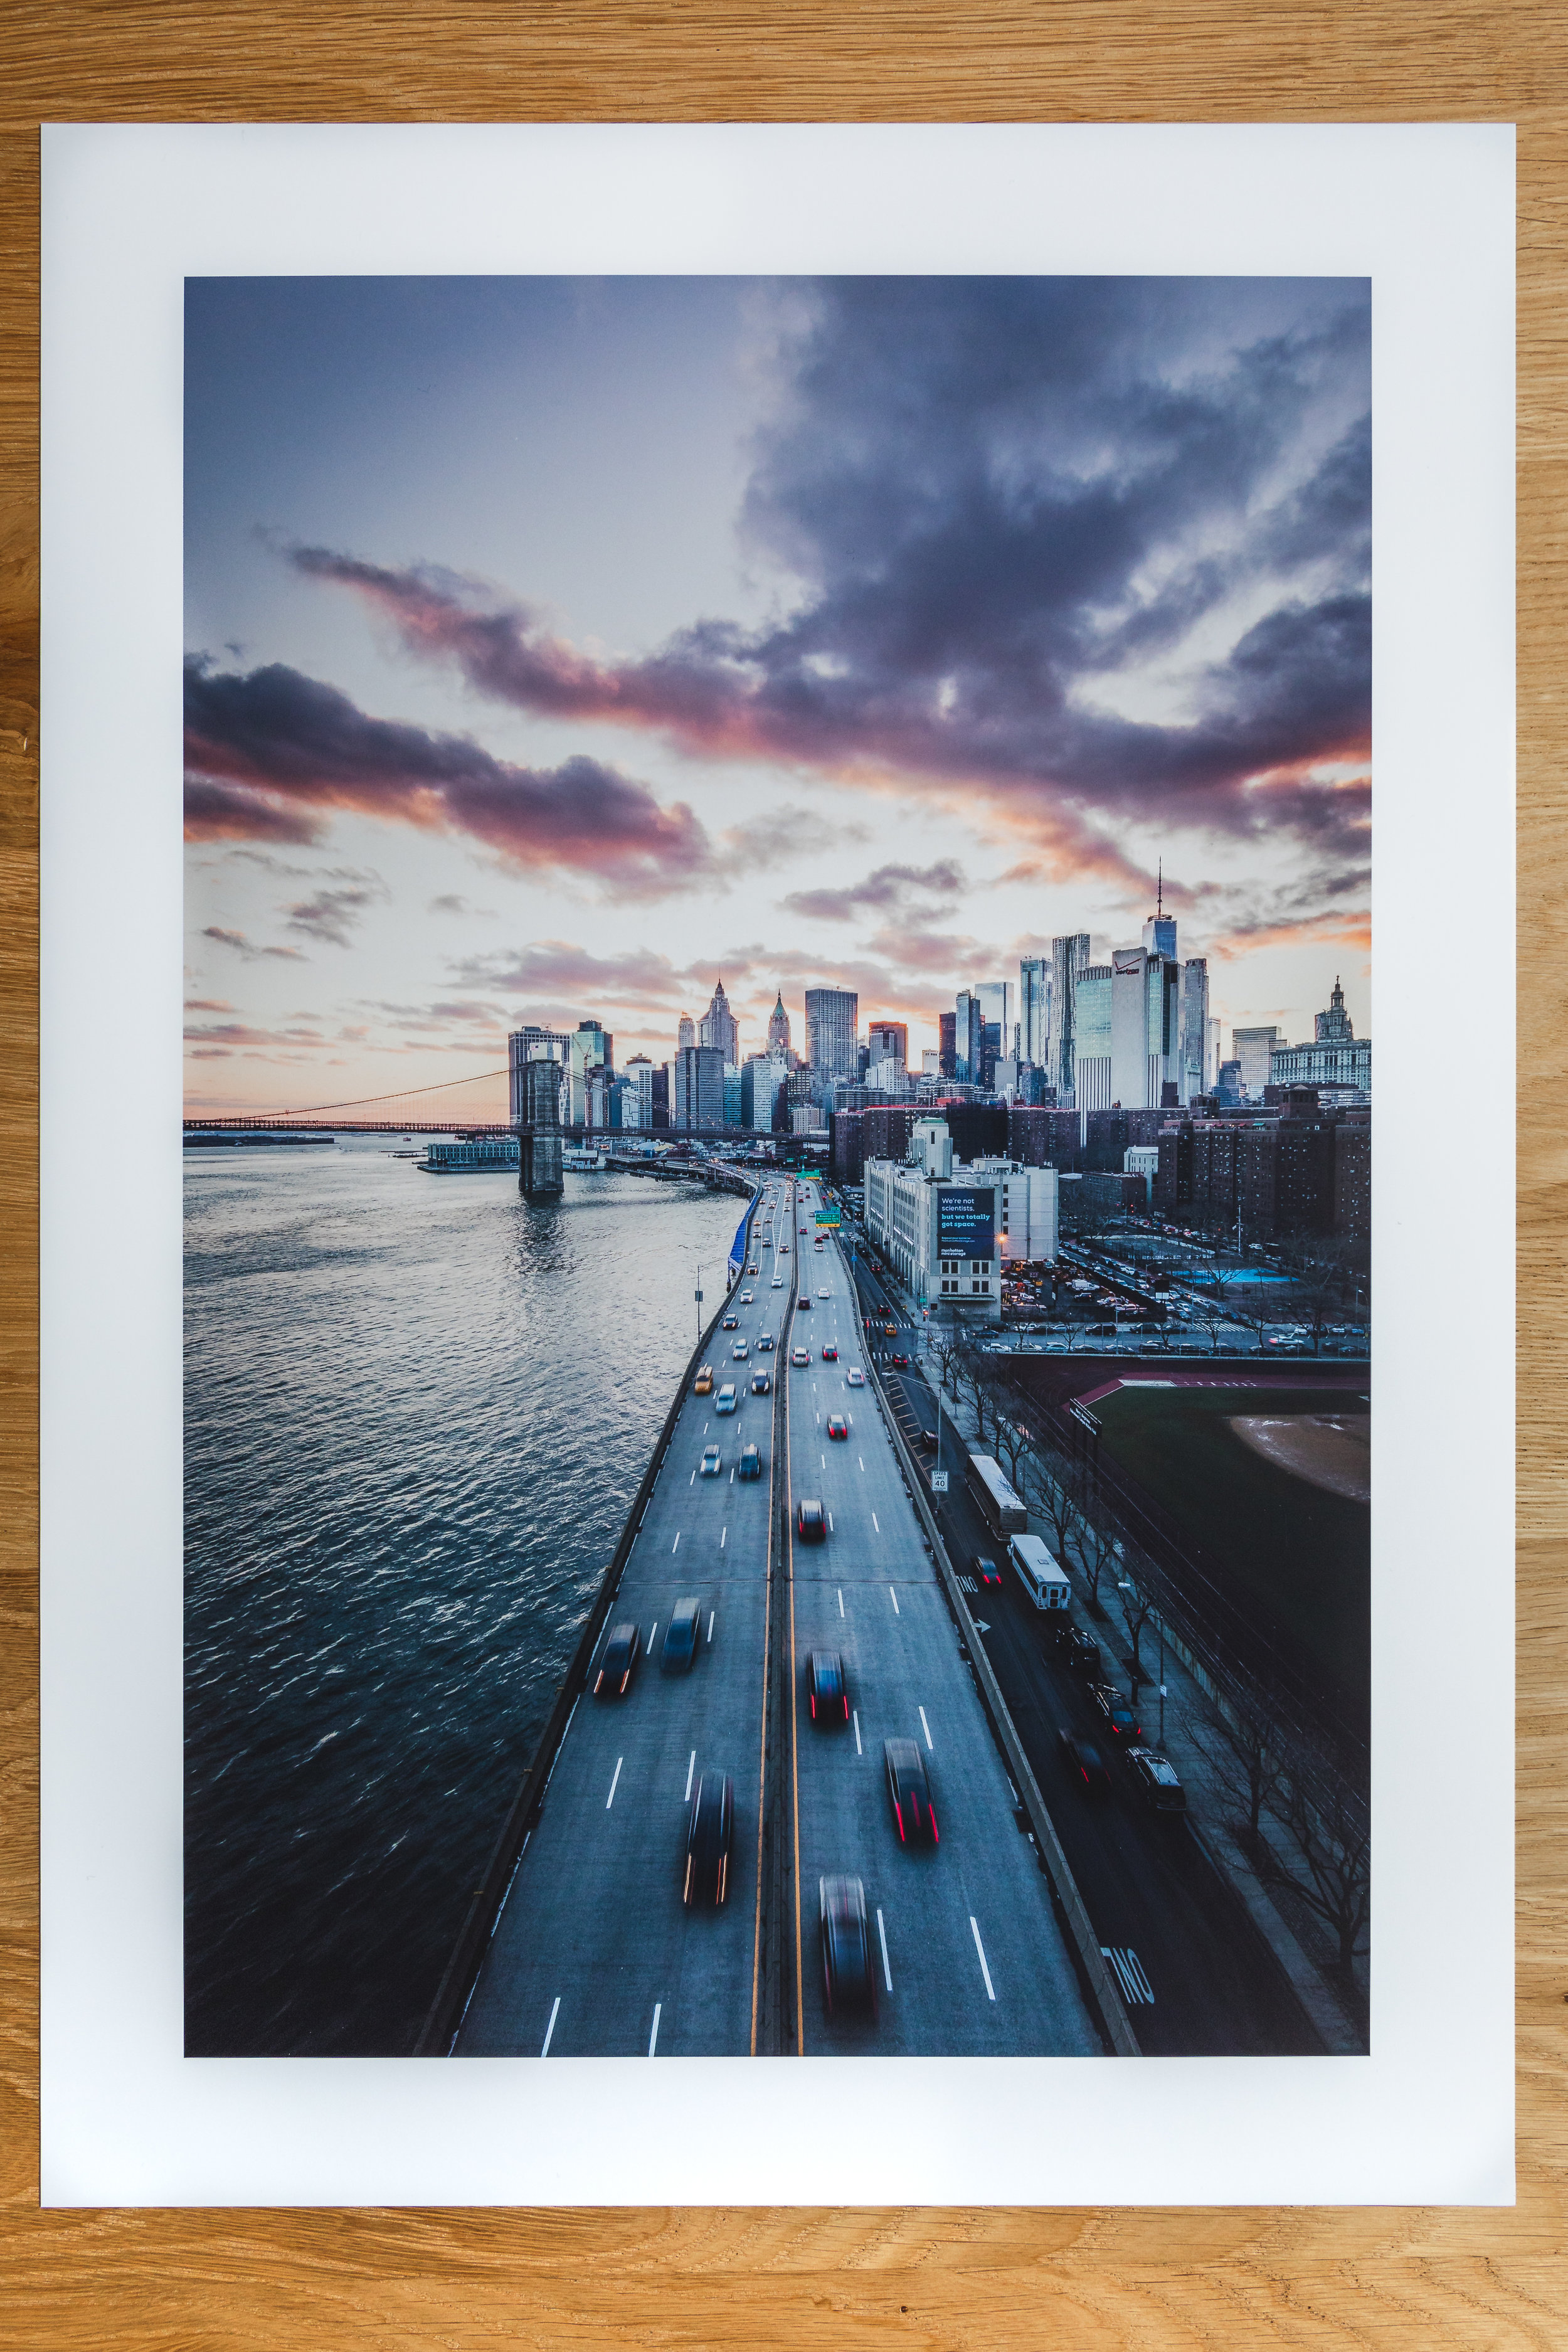 New York City on Canon Photo Paper Pro Platinum  Canon EOS 5D Mark IV & EF 16-35mm f/4L IS USM